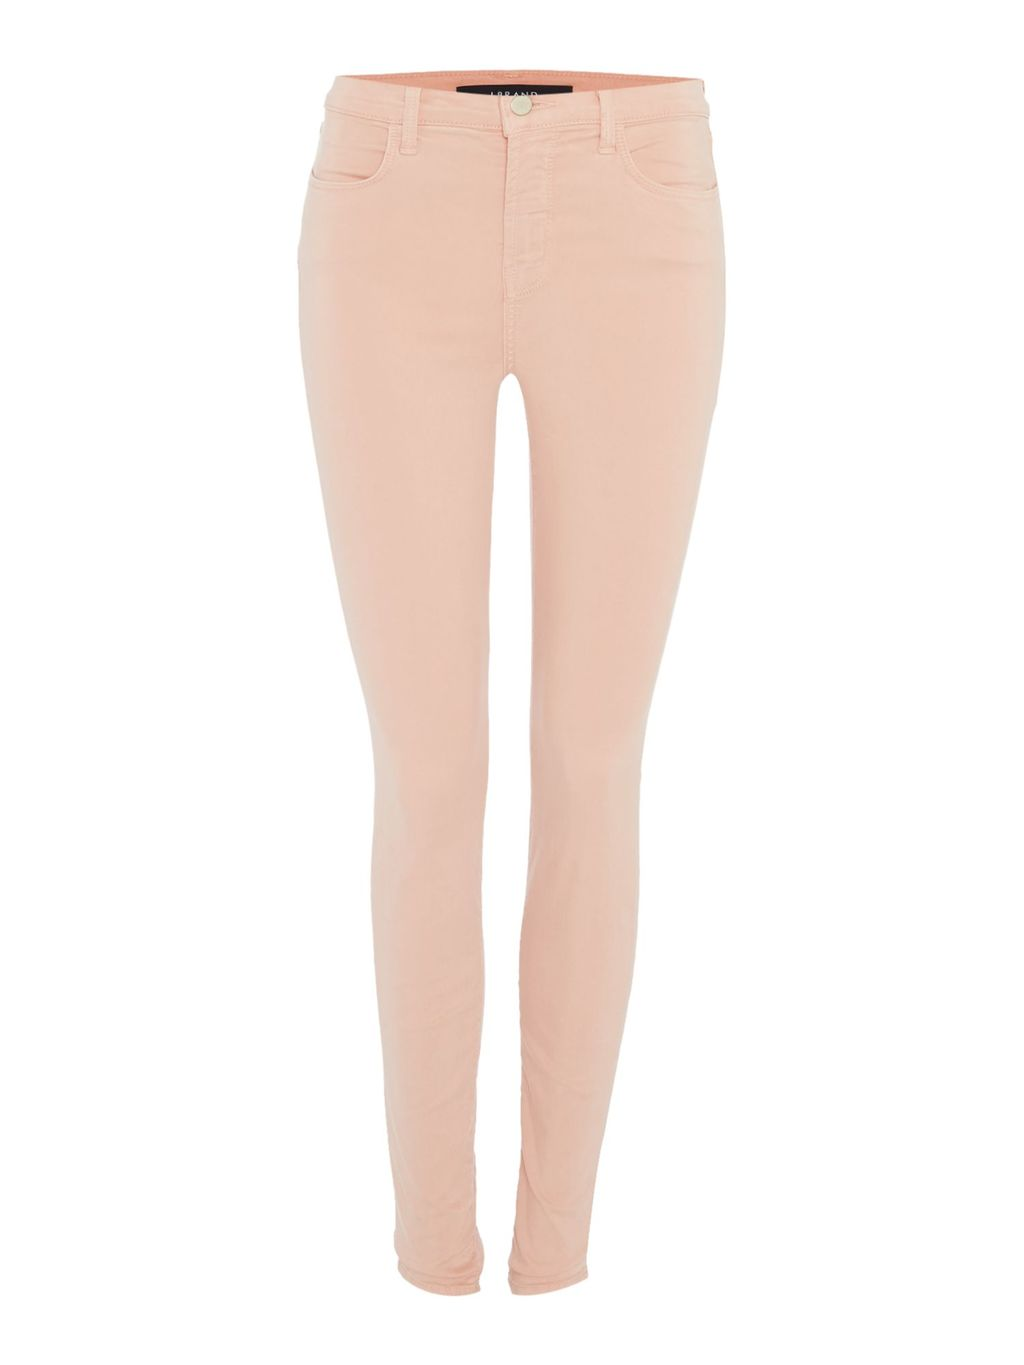 Maria High Rise Skinny Luxe Sateen Jeans, Pink - style: skinny leg; length: standard; pattern: plain; waist: high rise; pocket detail: traditional 5 pocket; predominant colour: blush; occasions: casual; fibres: cotton - stretch; texture group: denim; pattern type: fabric; season: s/s 2016; wardrobe: highlight